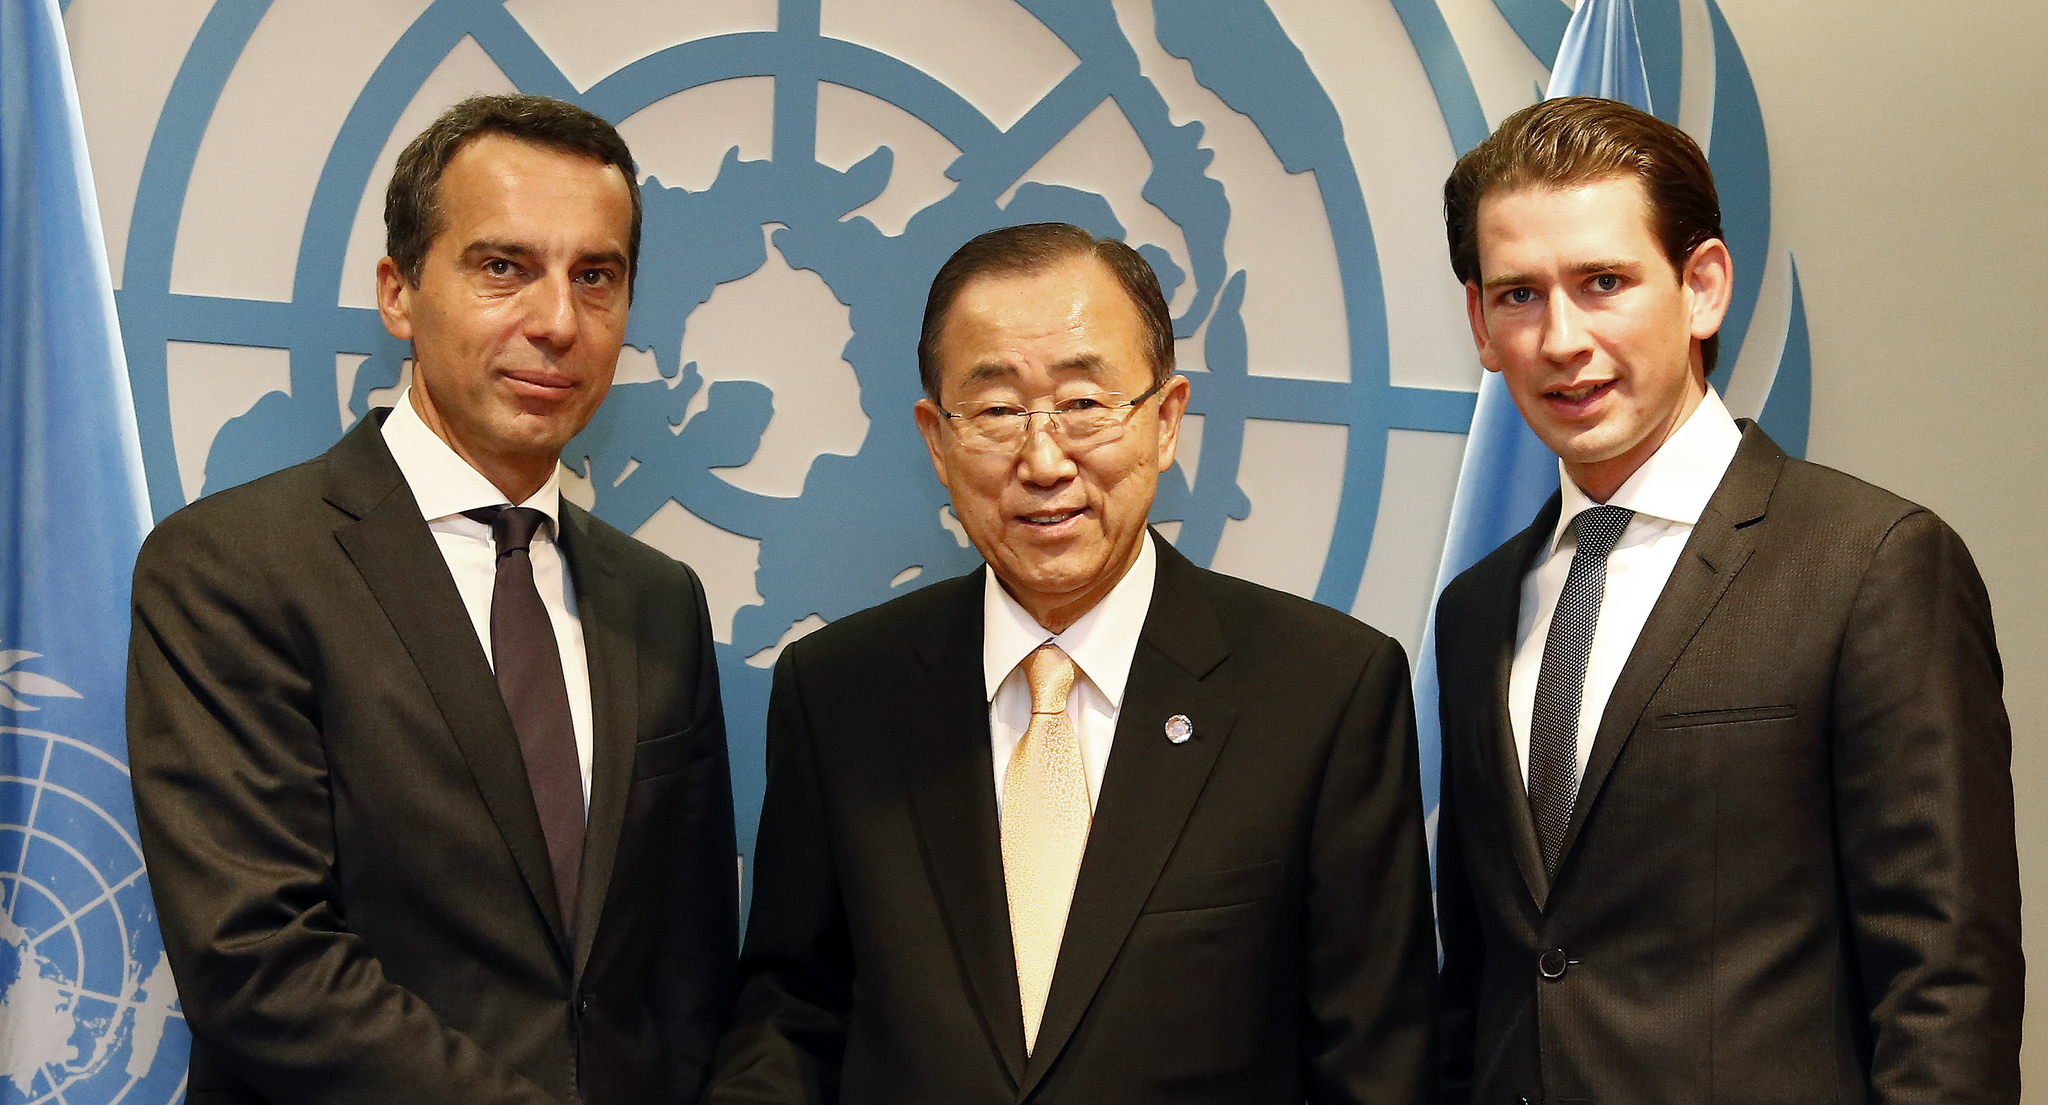 Chancellor Christian Kern, UN-SG Ban Ki Moon, and Foreign Minister Sebastian Kurz. Photo: Dragan Tatic